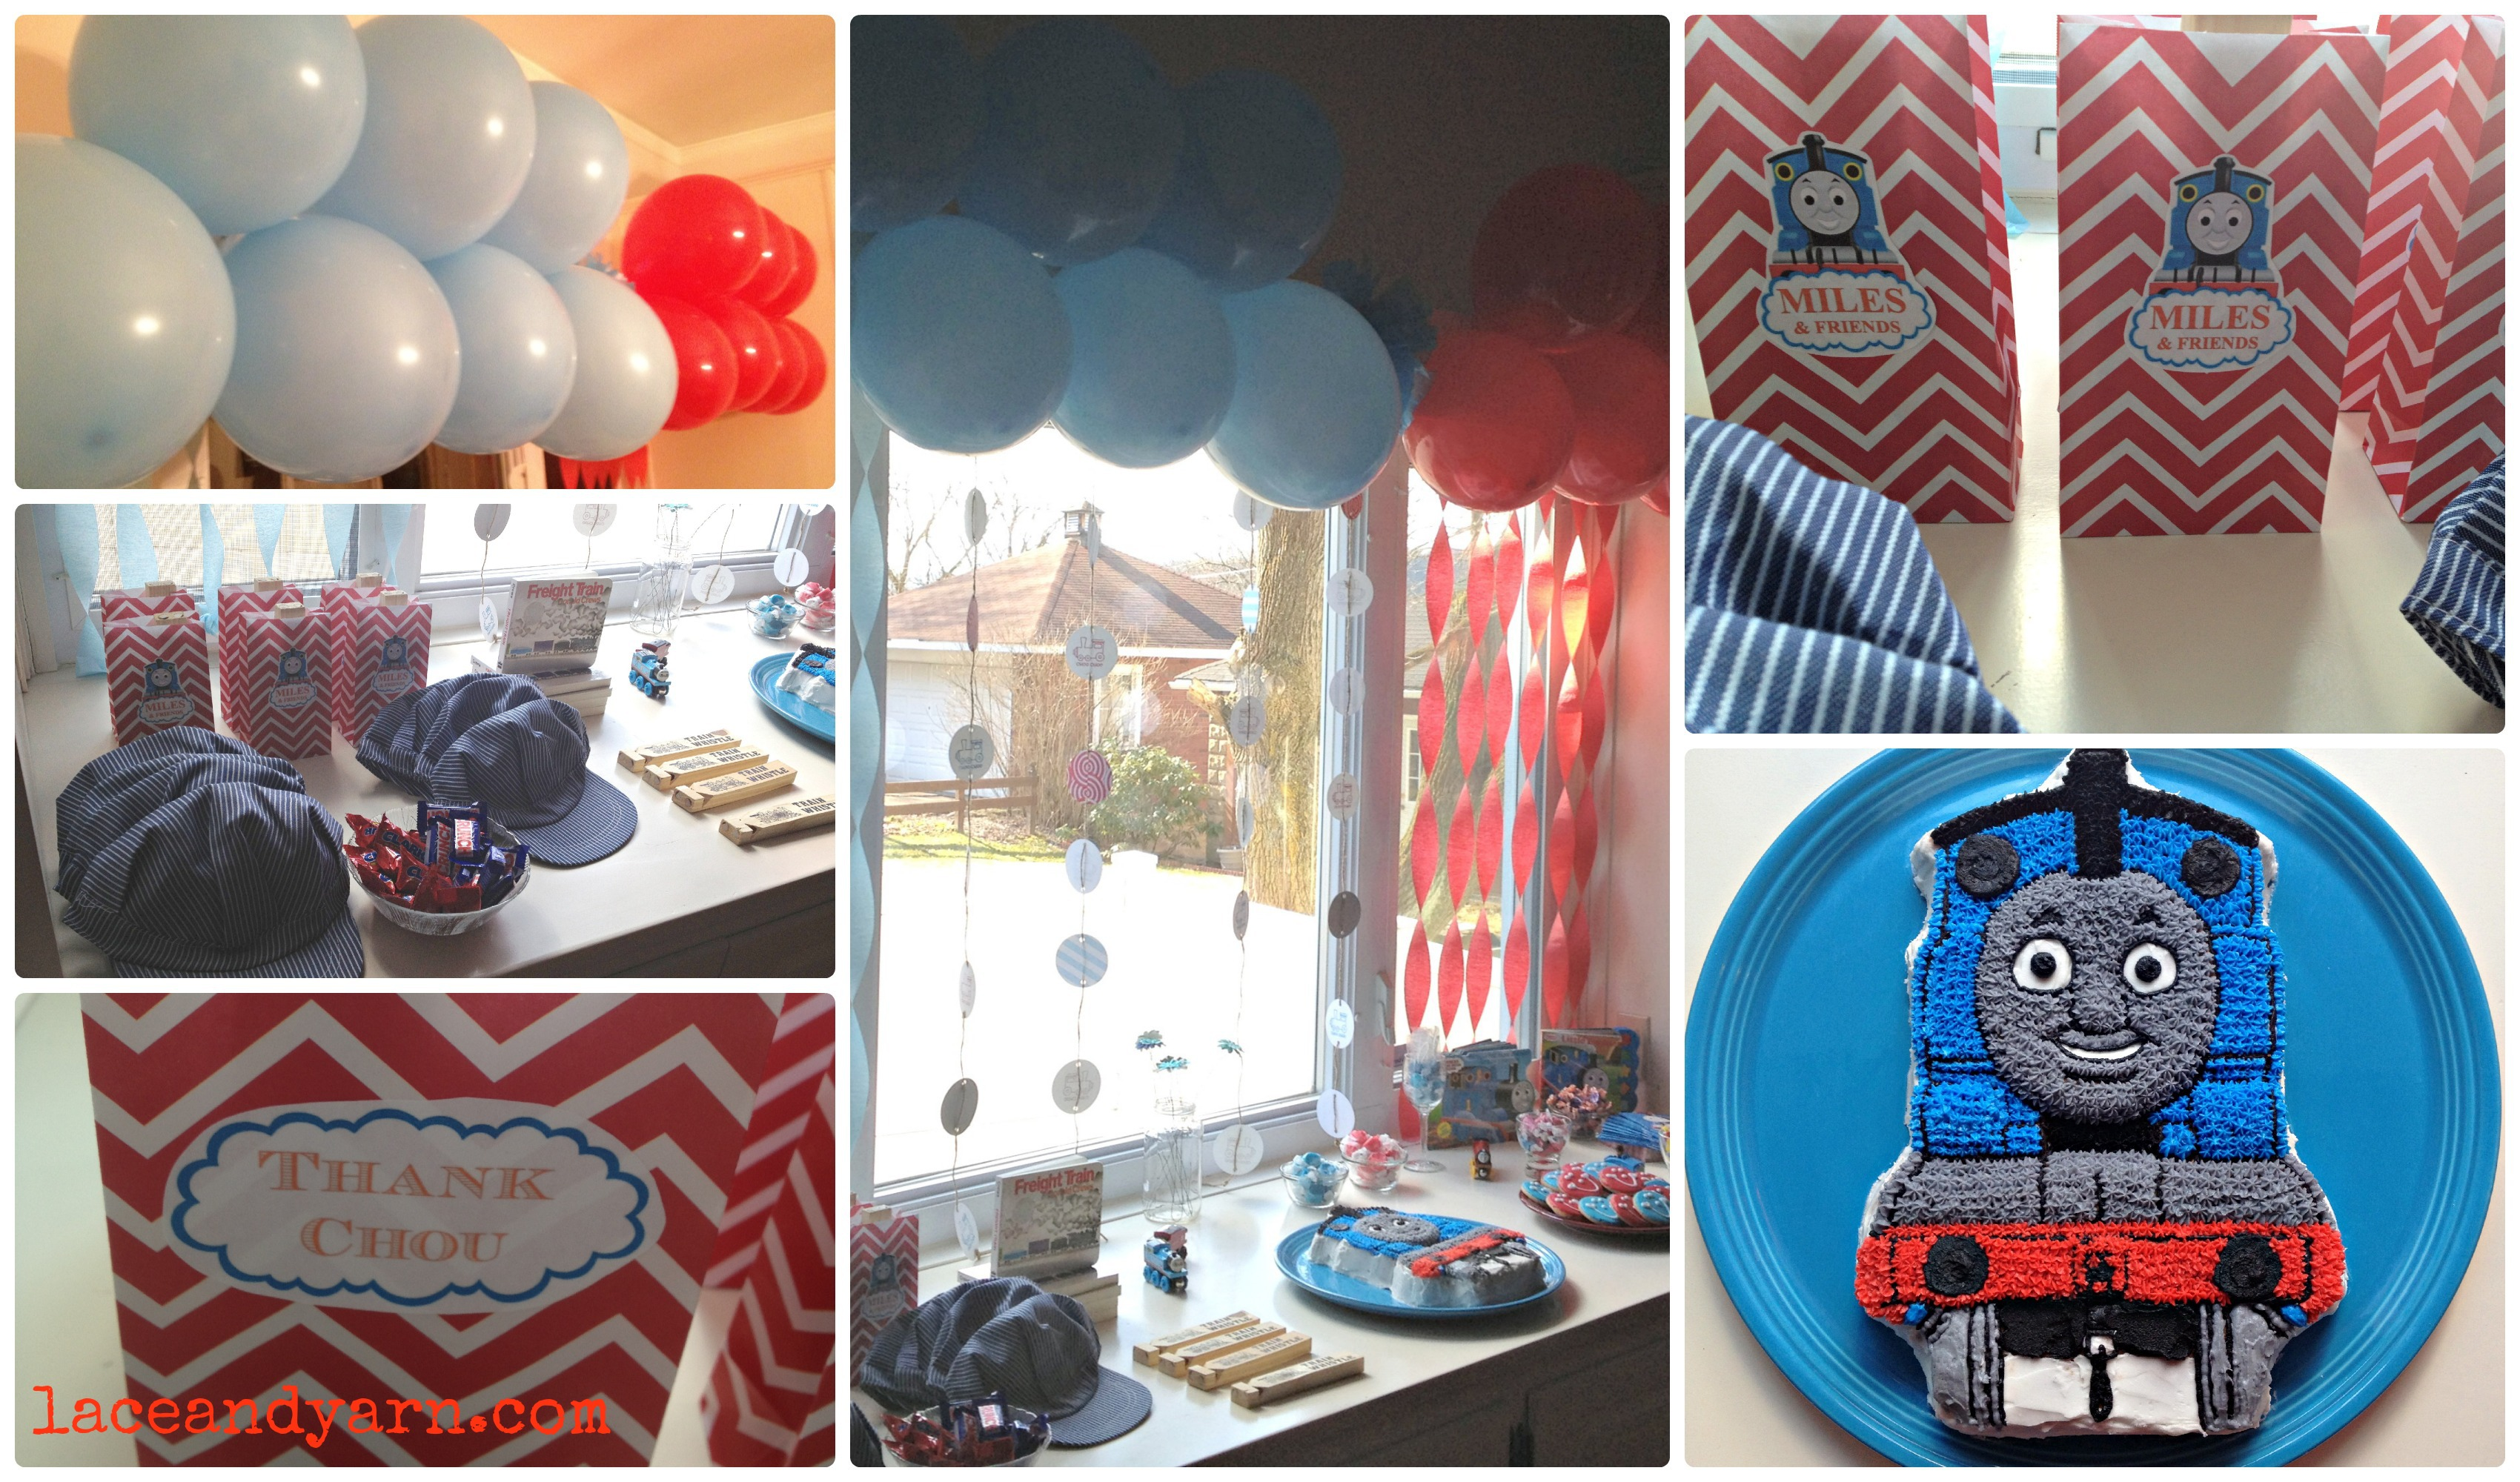 choo choo thomas the tank engine inspired birthday party lace and yarn. Black Bedroom Furniture Sets. Home Design Ideas